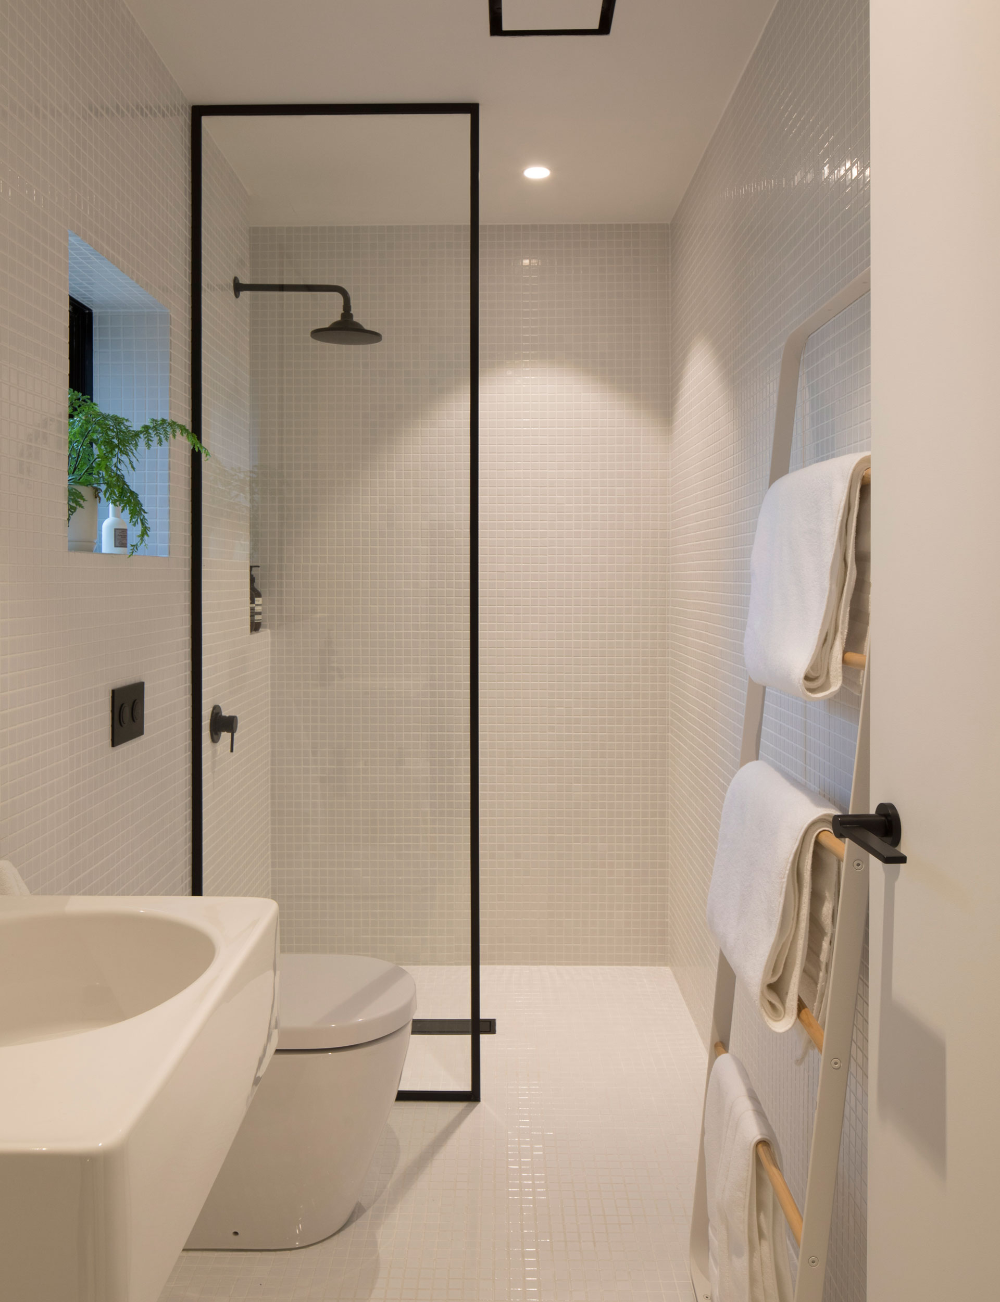 Photo of How minimalist design took this small bathroom to the next level